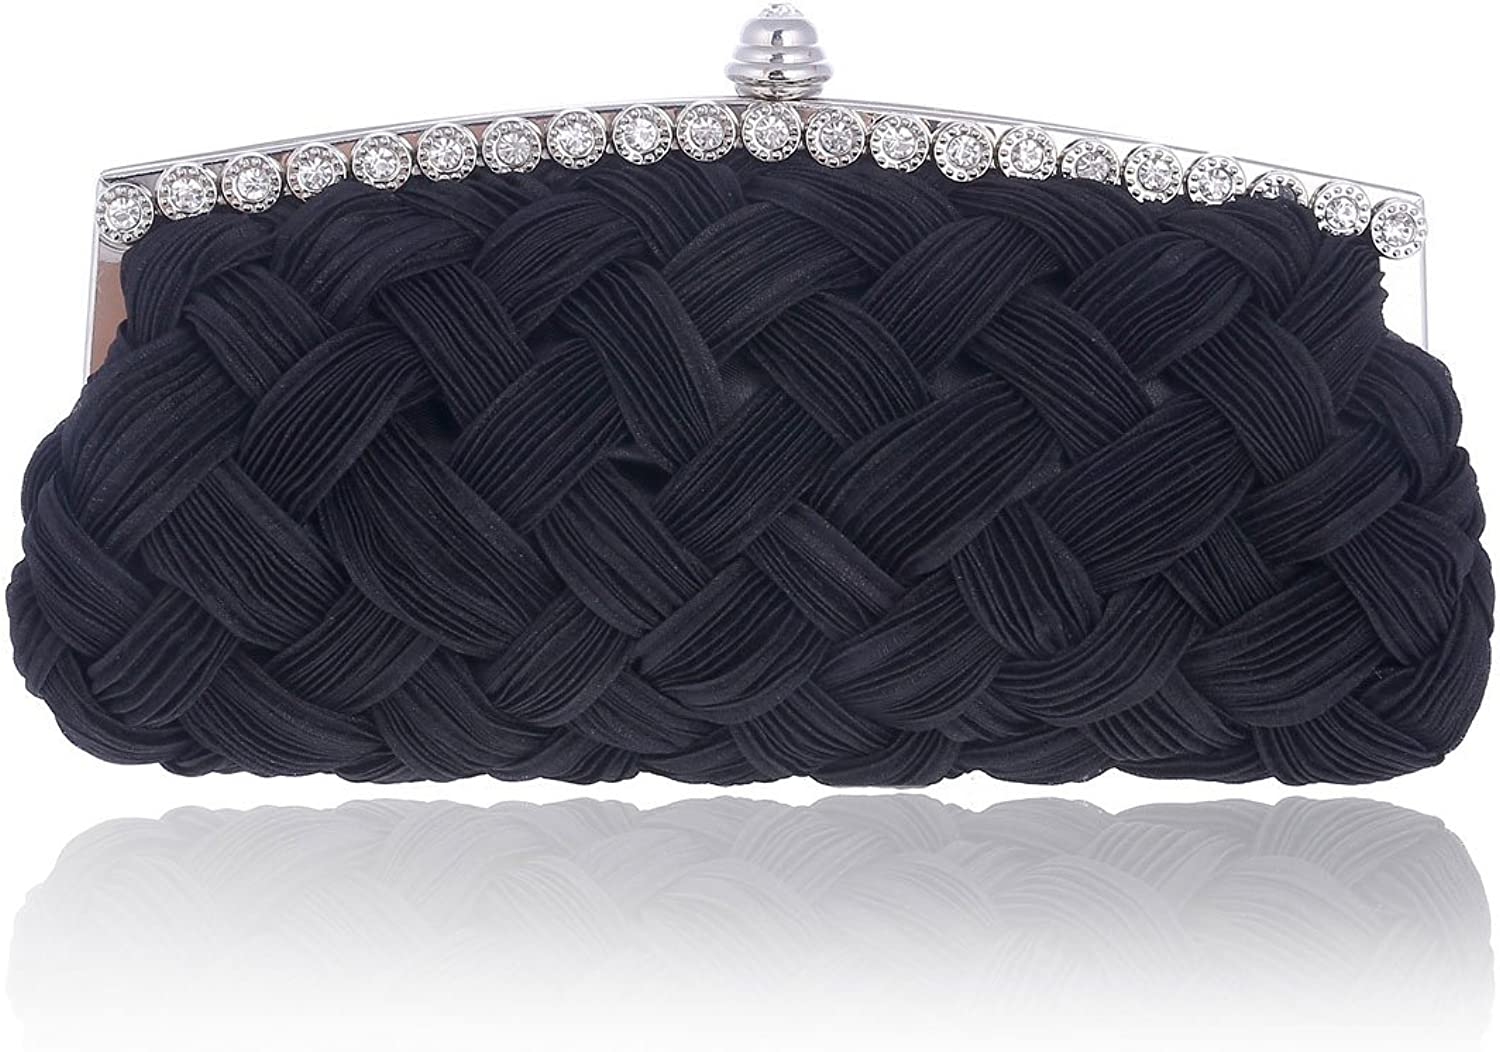 Damara Lady Soft Satin Woven Fabric Crystal Prom Clutch Bag